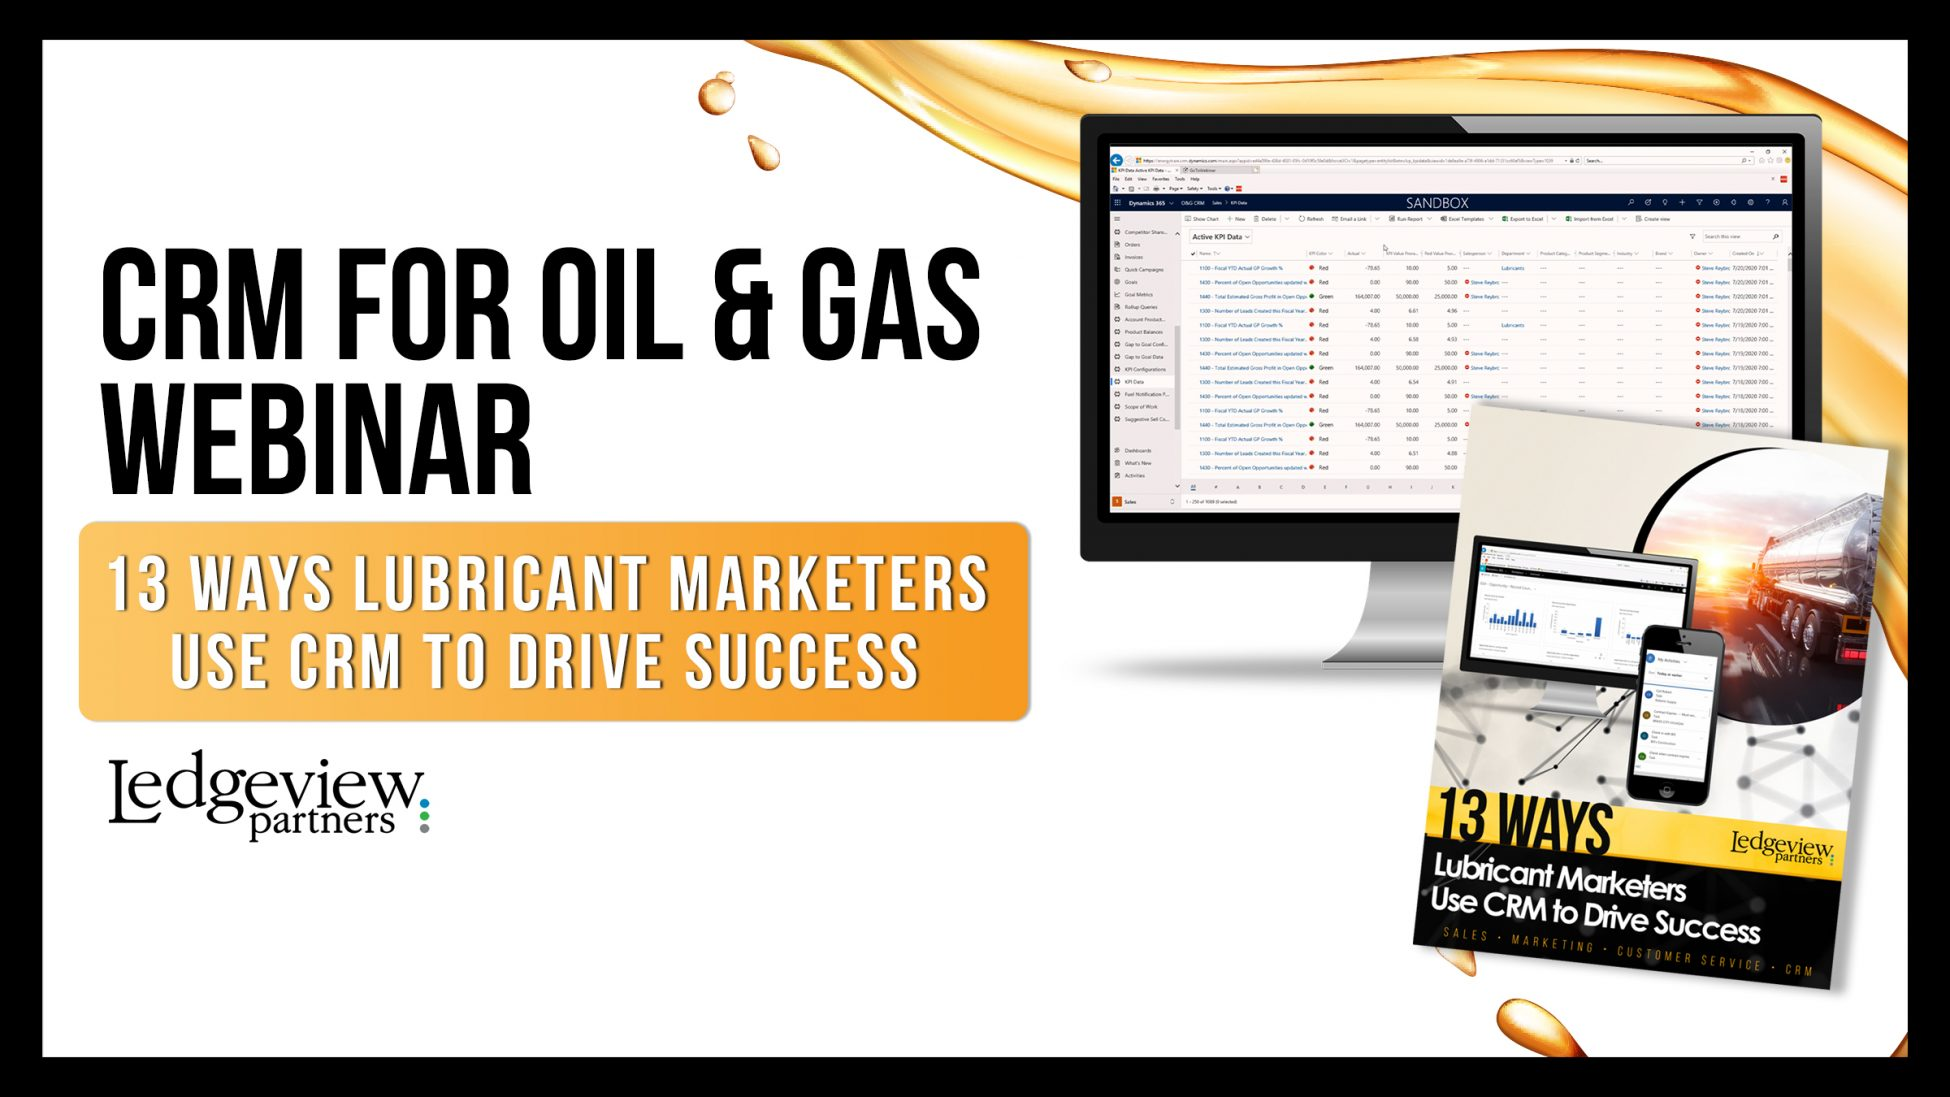 Webinar: 13 Ways Lubricant Marketers Use CRM to Drive Success CRMOG